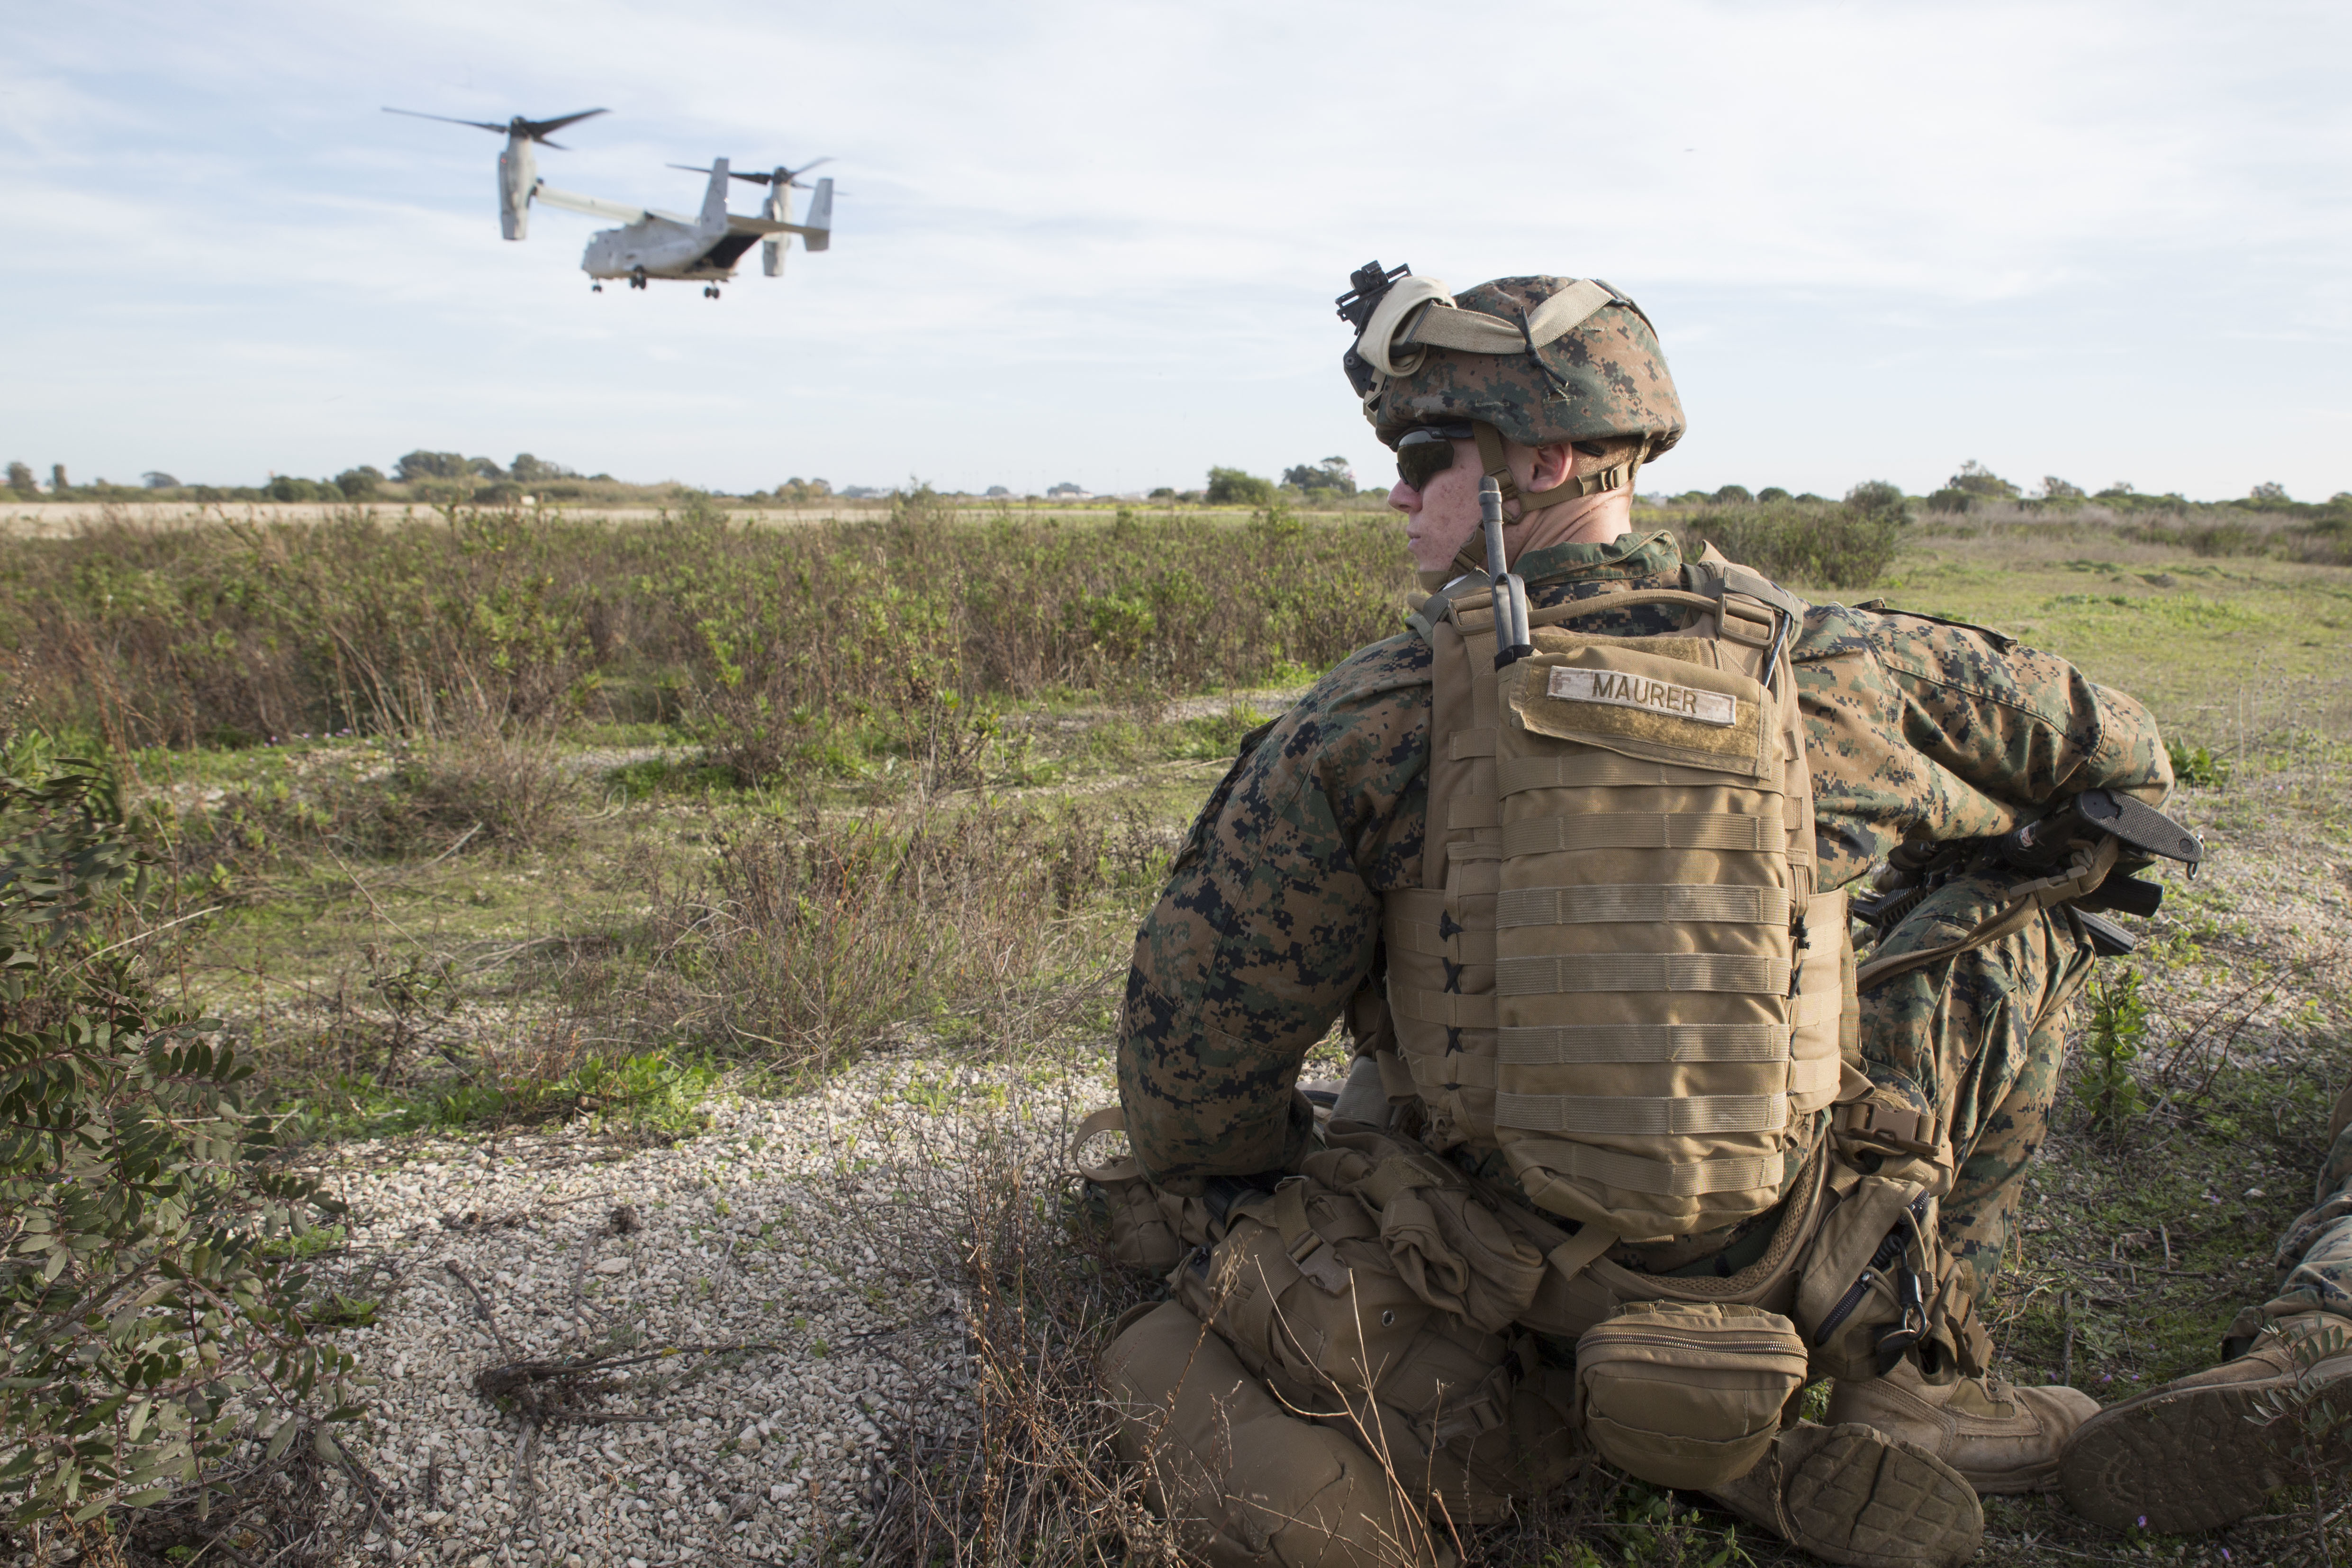 U.S. Marine Cpl. Kyle Maurer, machine gunner with Special-Purpose Marine Air-Ground Task Force Crisis Response-Africa, participates in an alert-force drill aboard Naval Station Rota, Spain, January 23, 2016. The alert force tested the unit's capabilities by simulating the procedures of reacting to a time-constrained, crisis-response mission. (U.S. Marine Corps photo by Sgt. Tia Nagle)